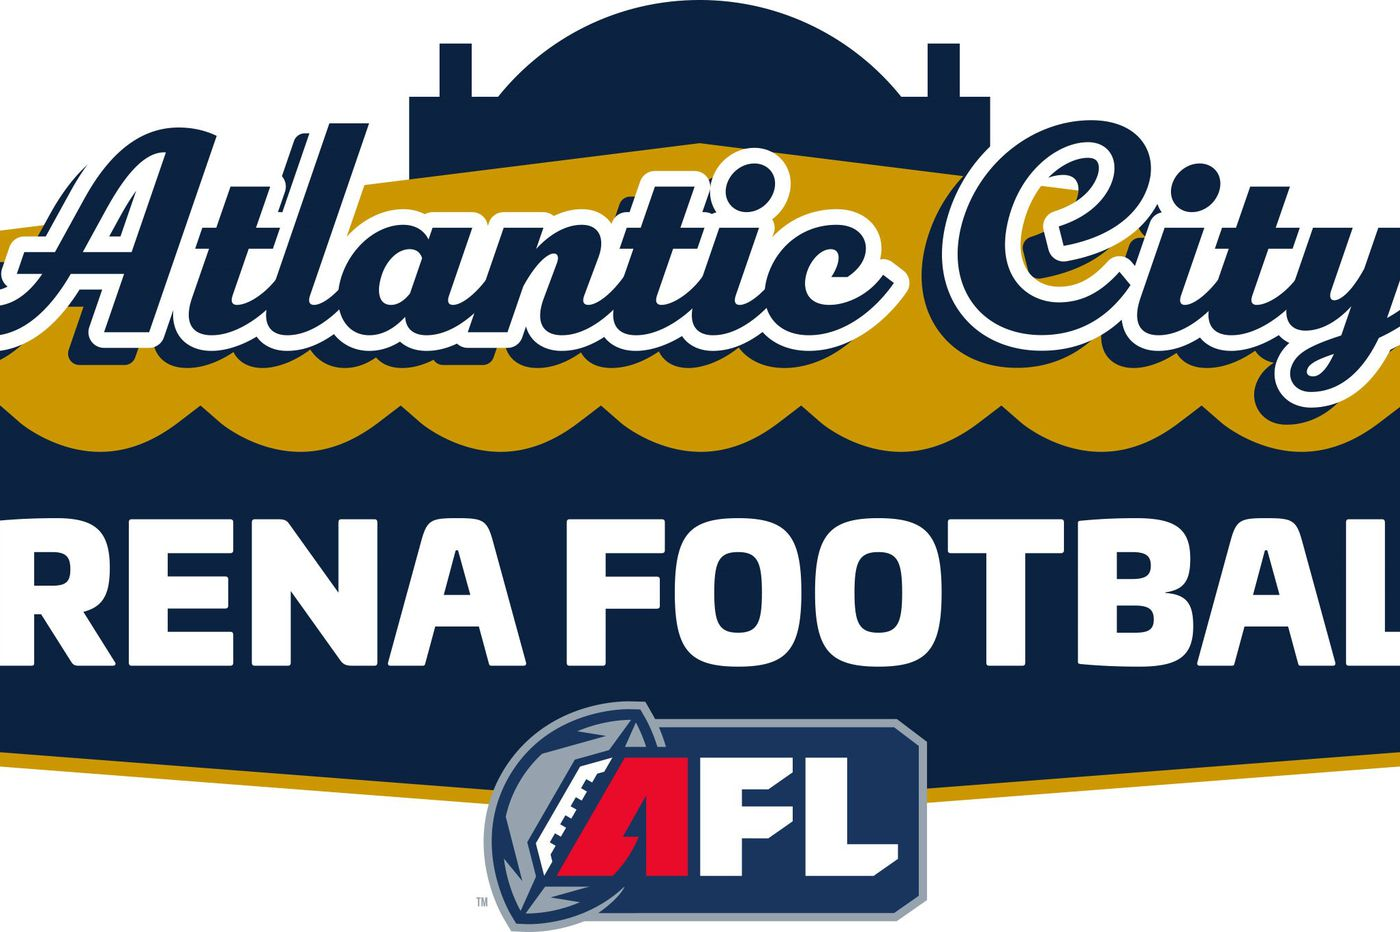 Arena Football League team is coming to Atlantic City, and you get a chance to name it